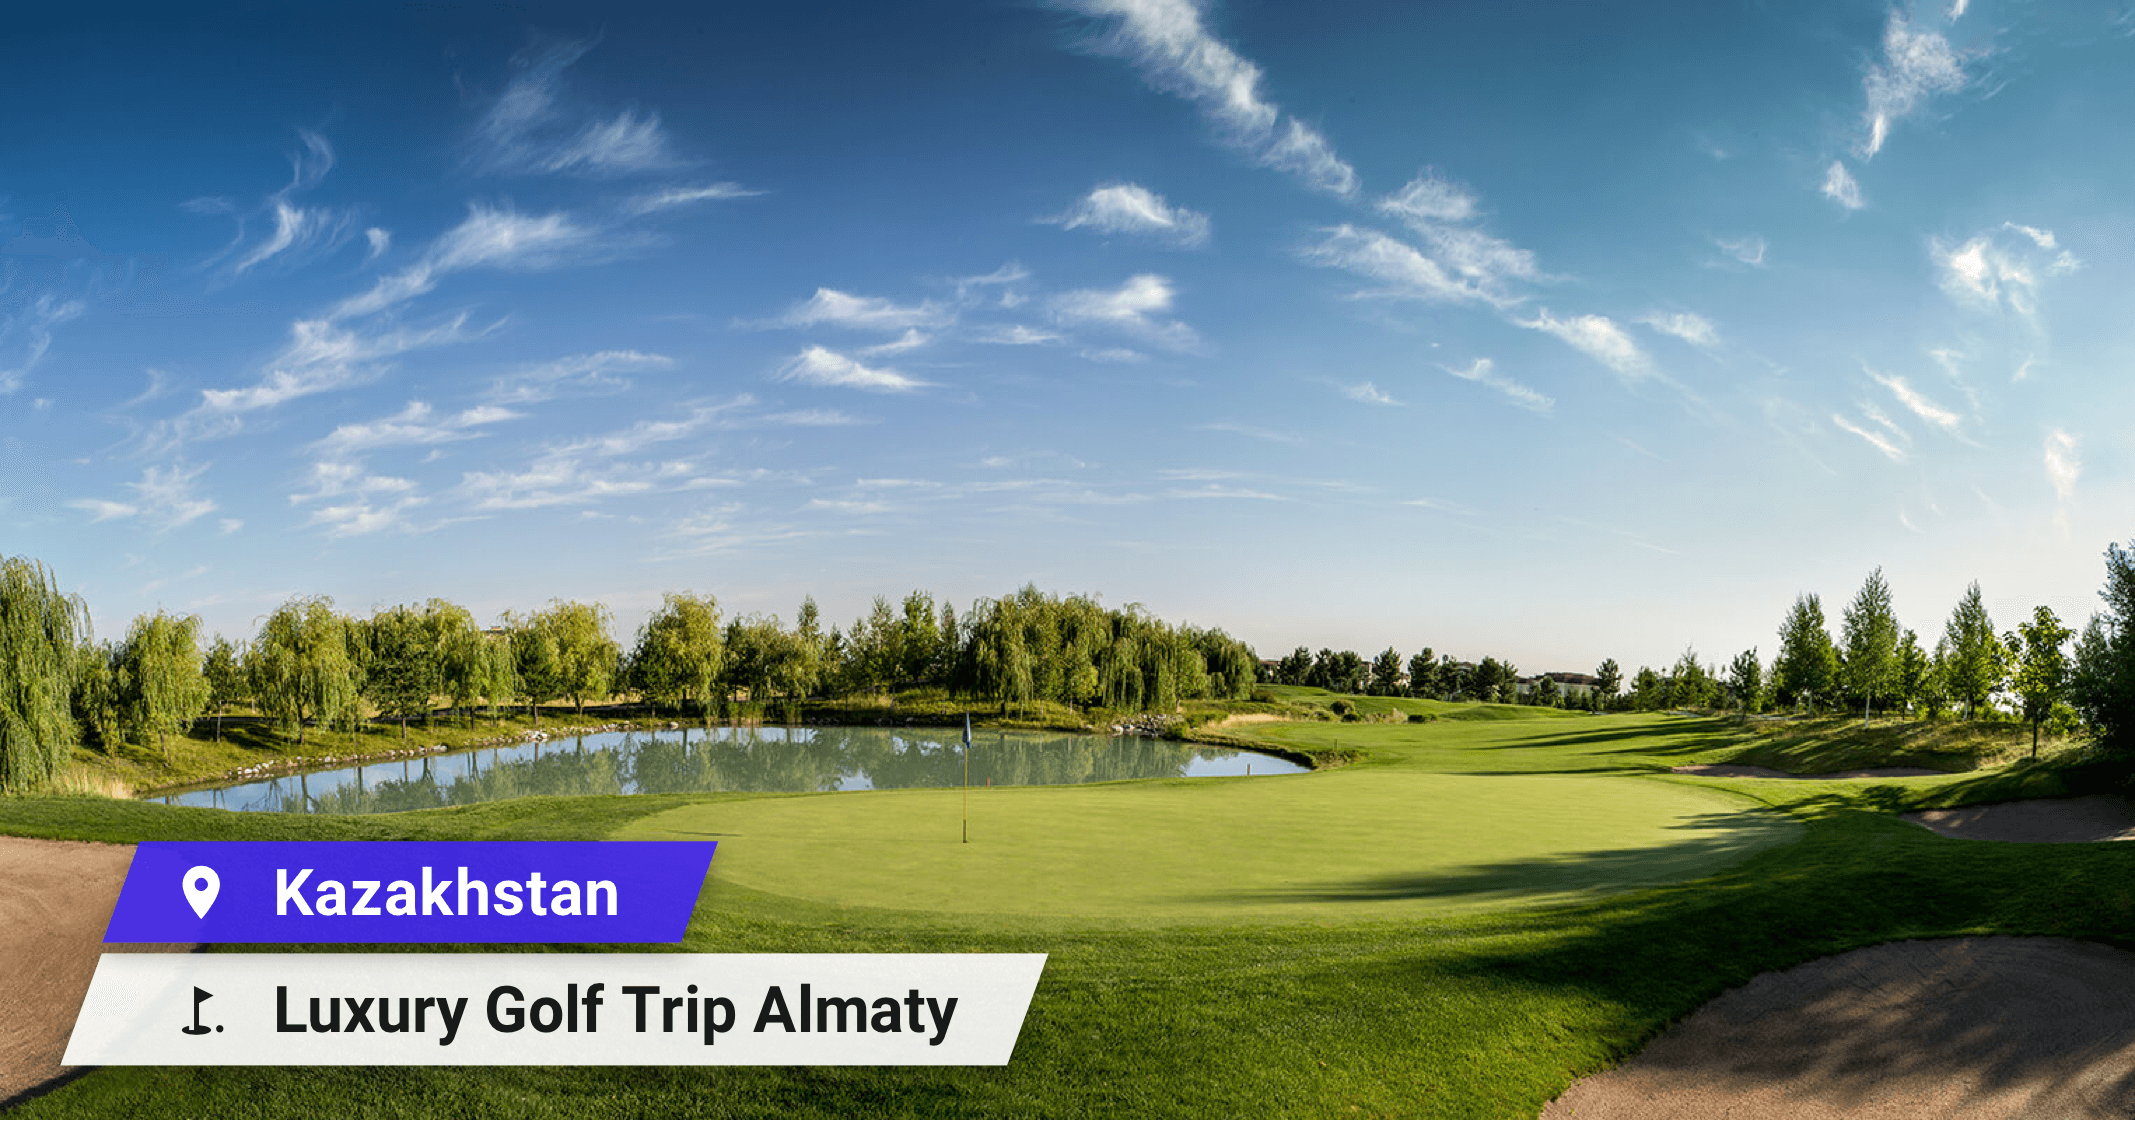 Kazakhstan Luxury Golf Trip Almaty